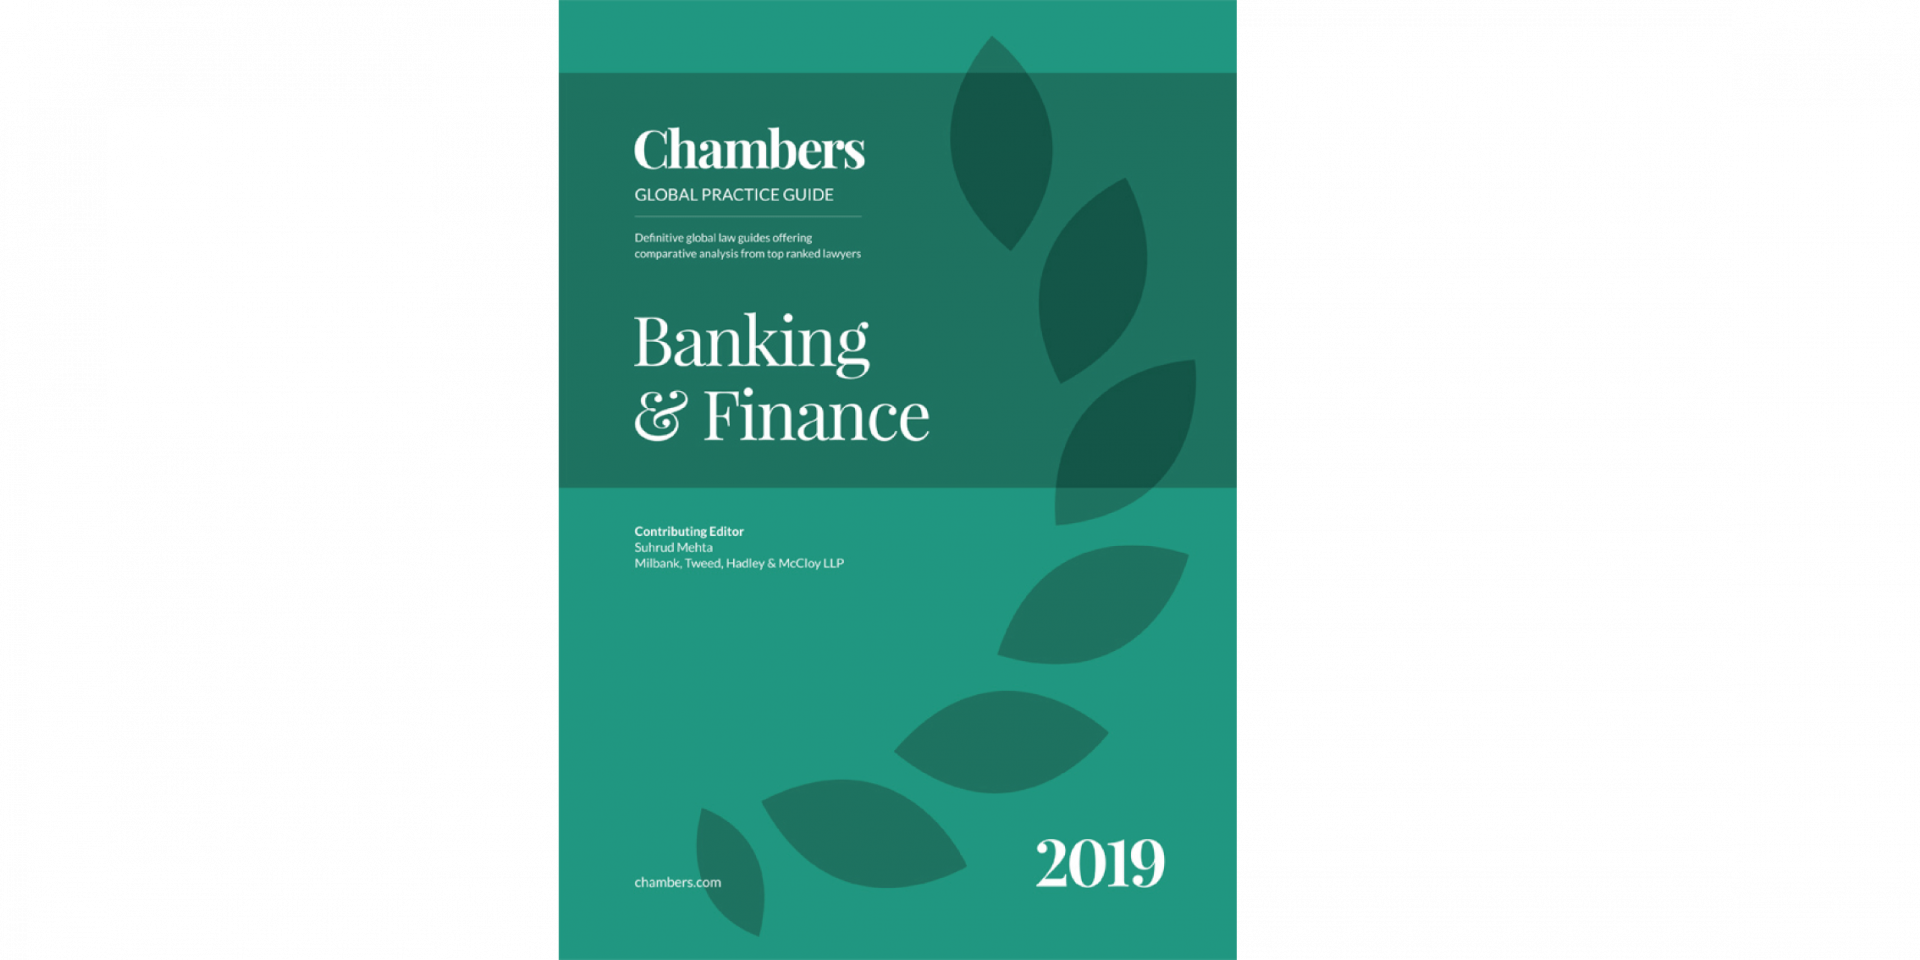 Banking & Finance Practice Guide 2019 by Chambers and Partners